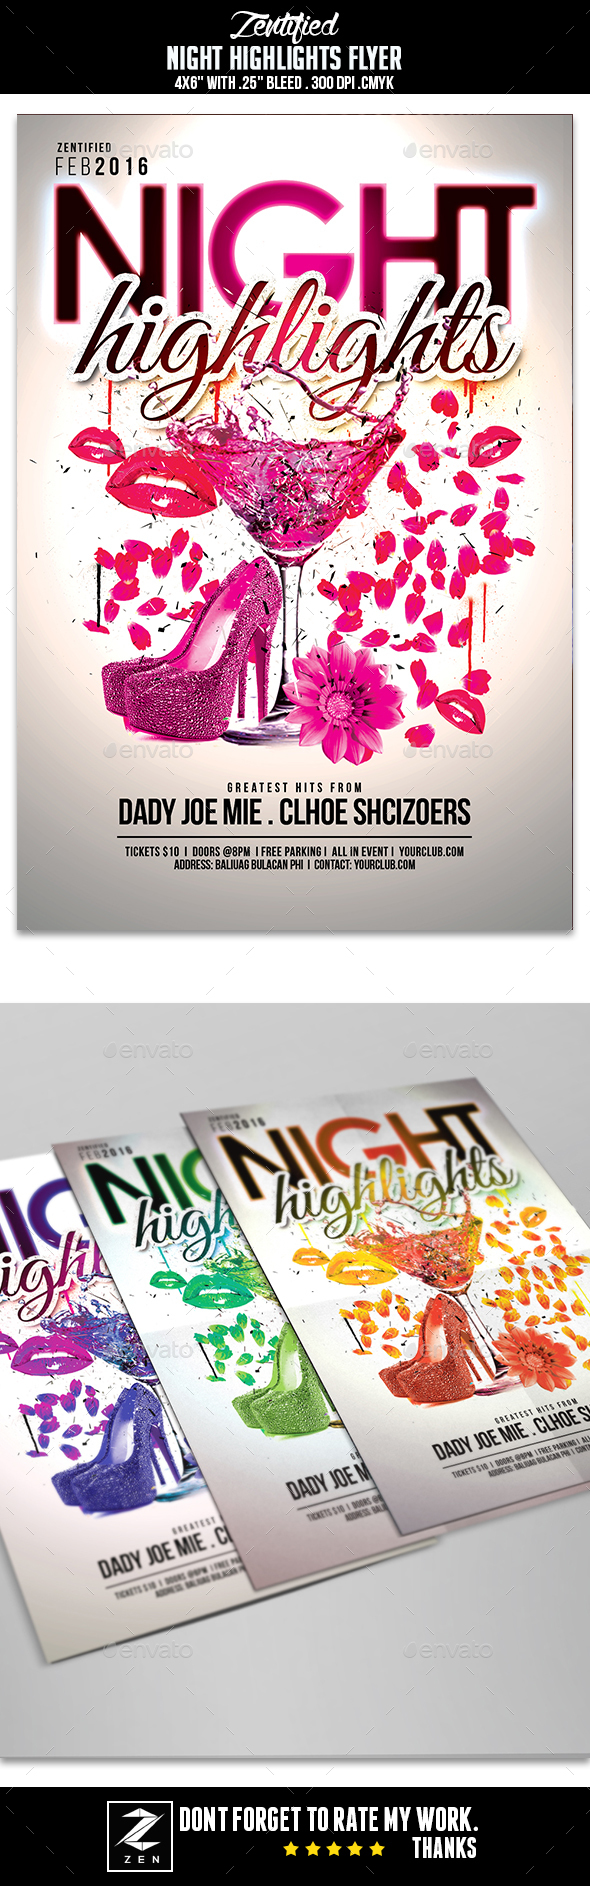 Night Highlights Flyer - Clubs & Parties Events